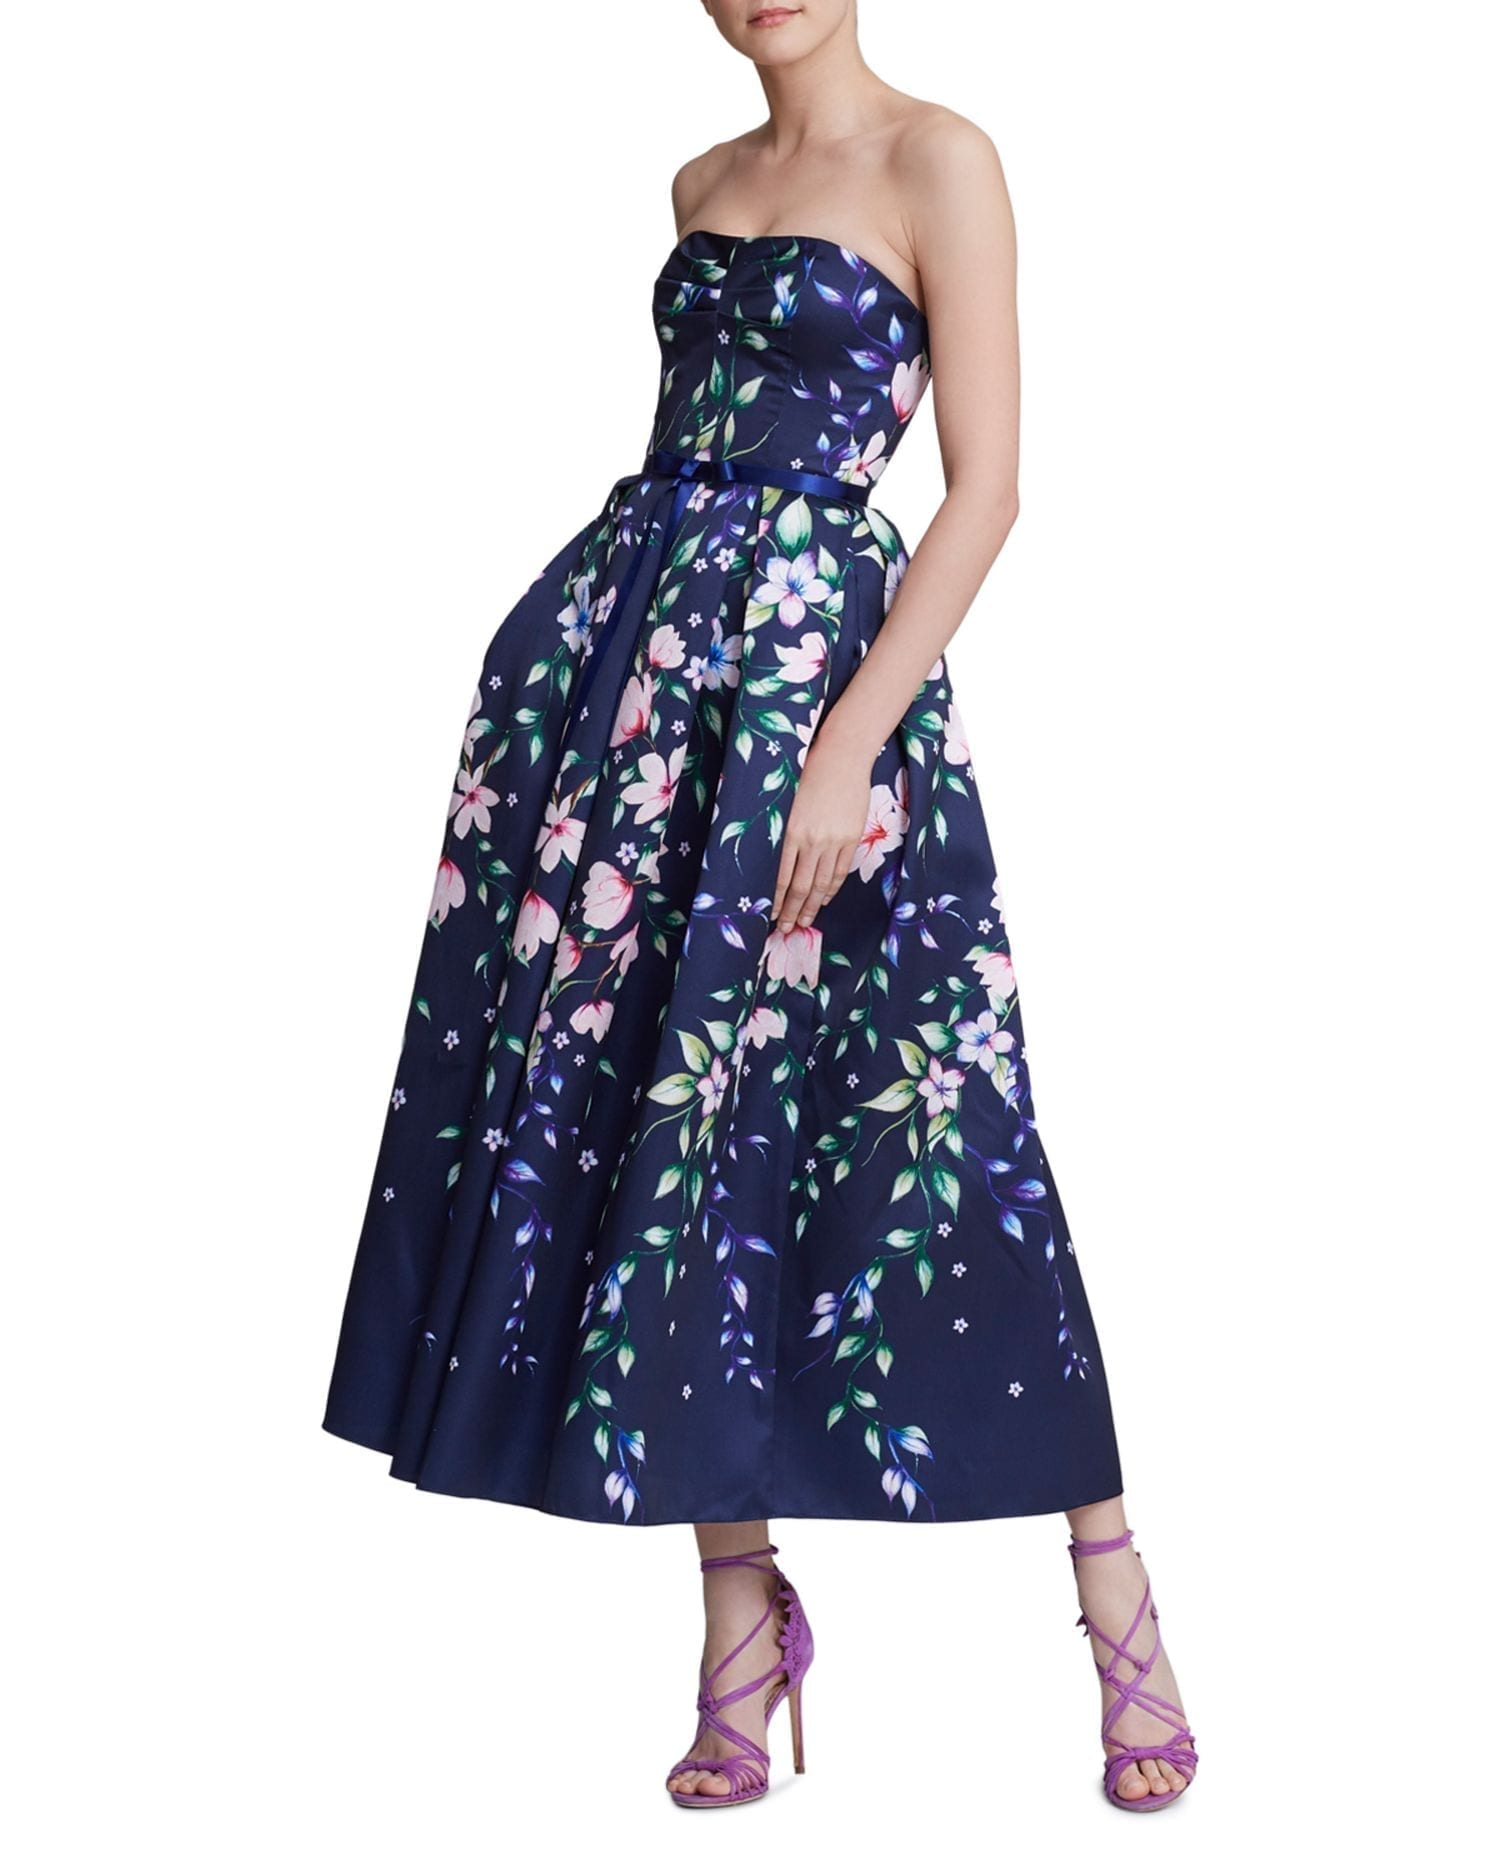 MARCHESA NOTTE Strapless Floral-Print Gown